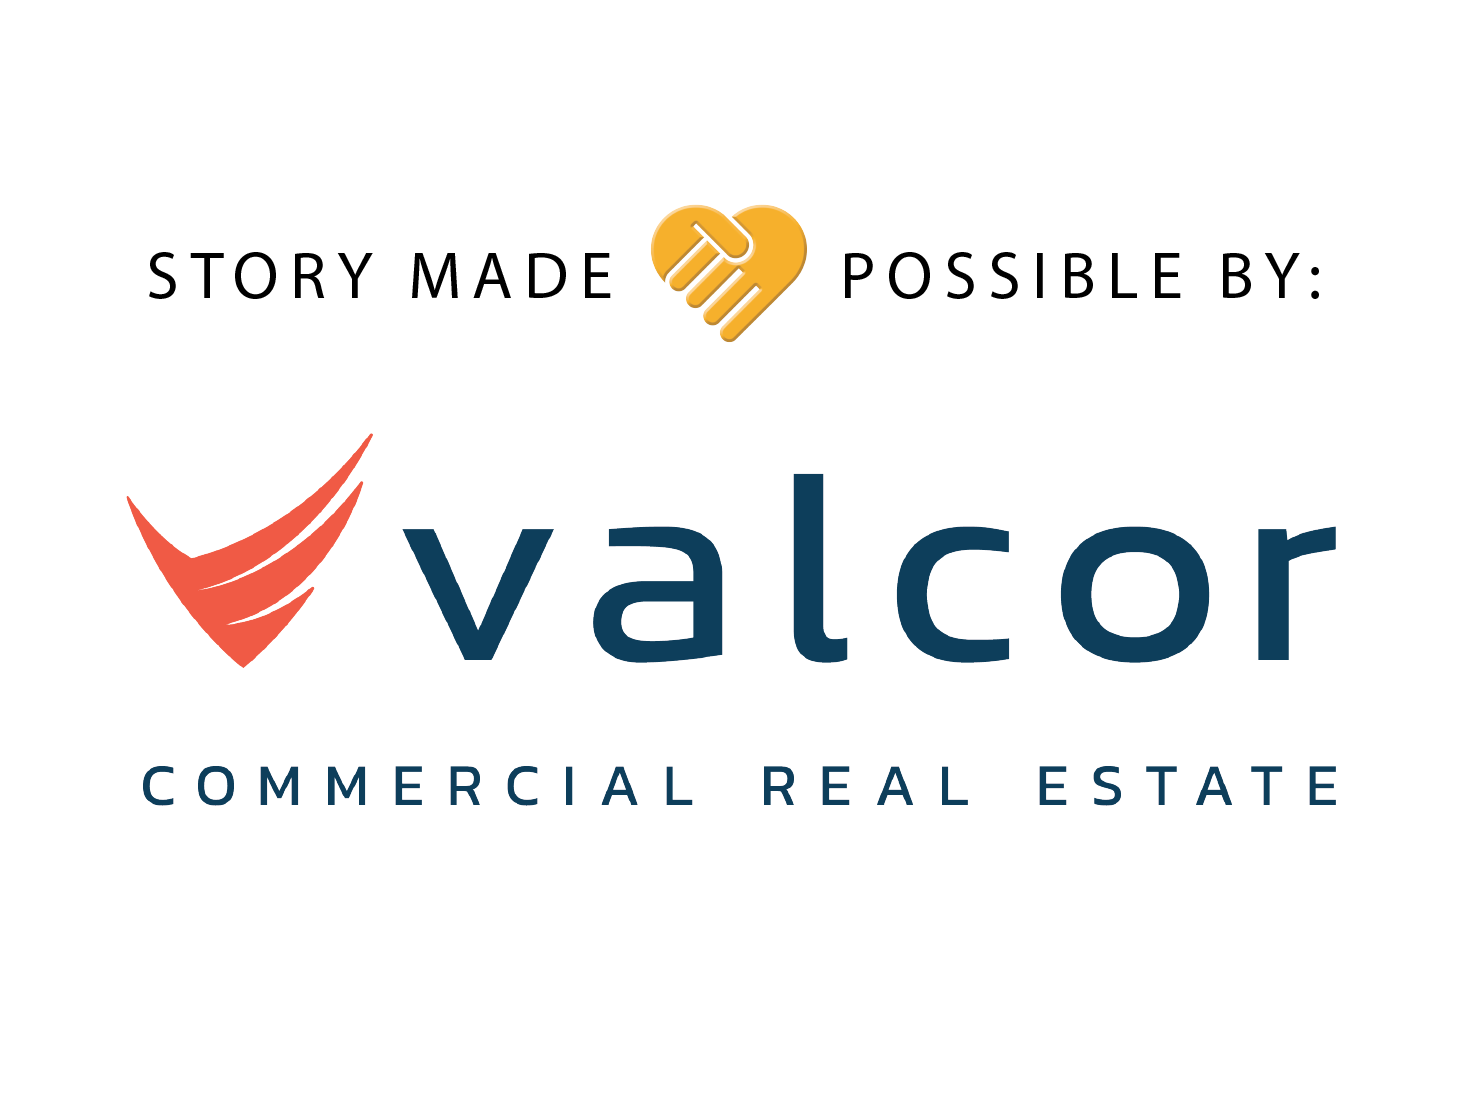 Story possible by: Valcor Commercial Real Estate